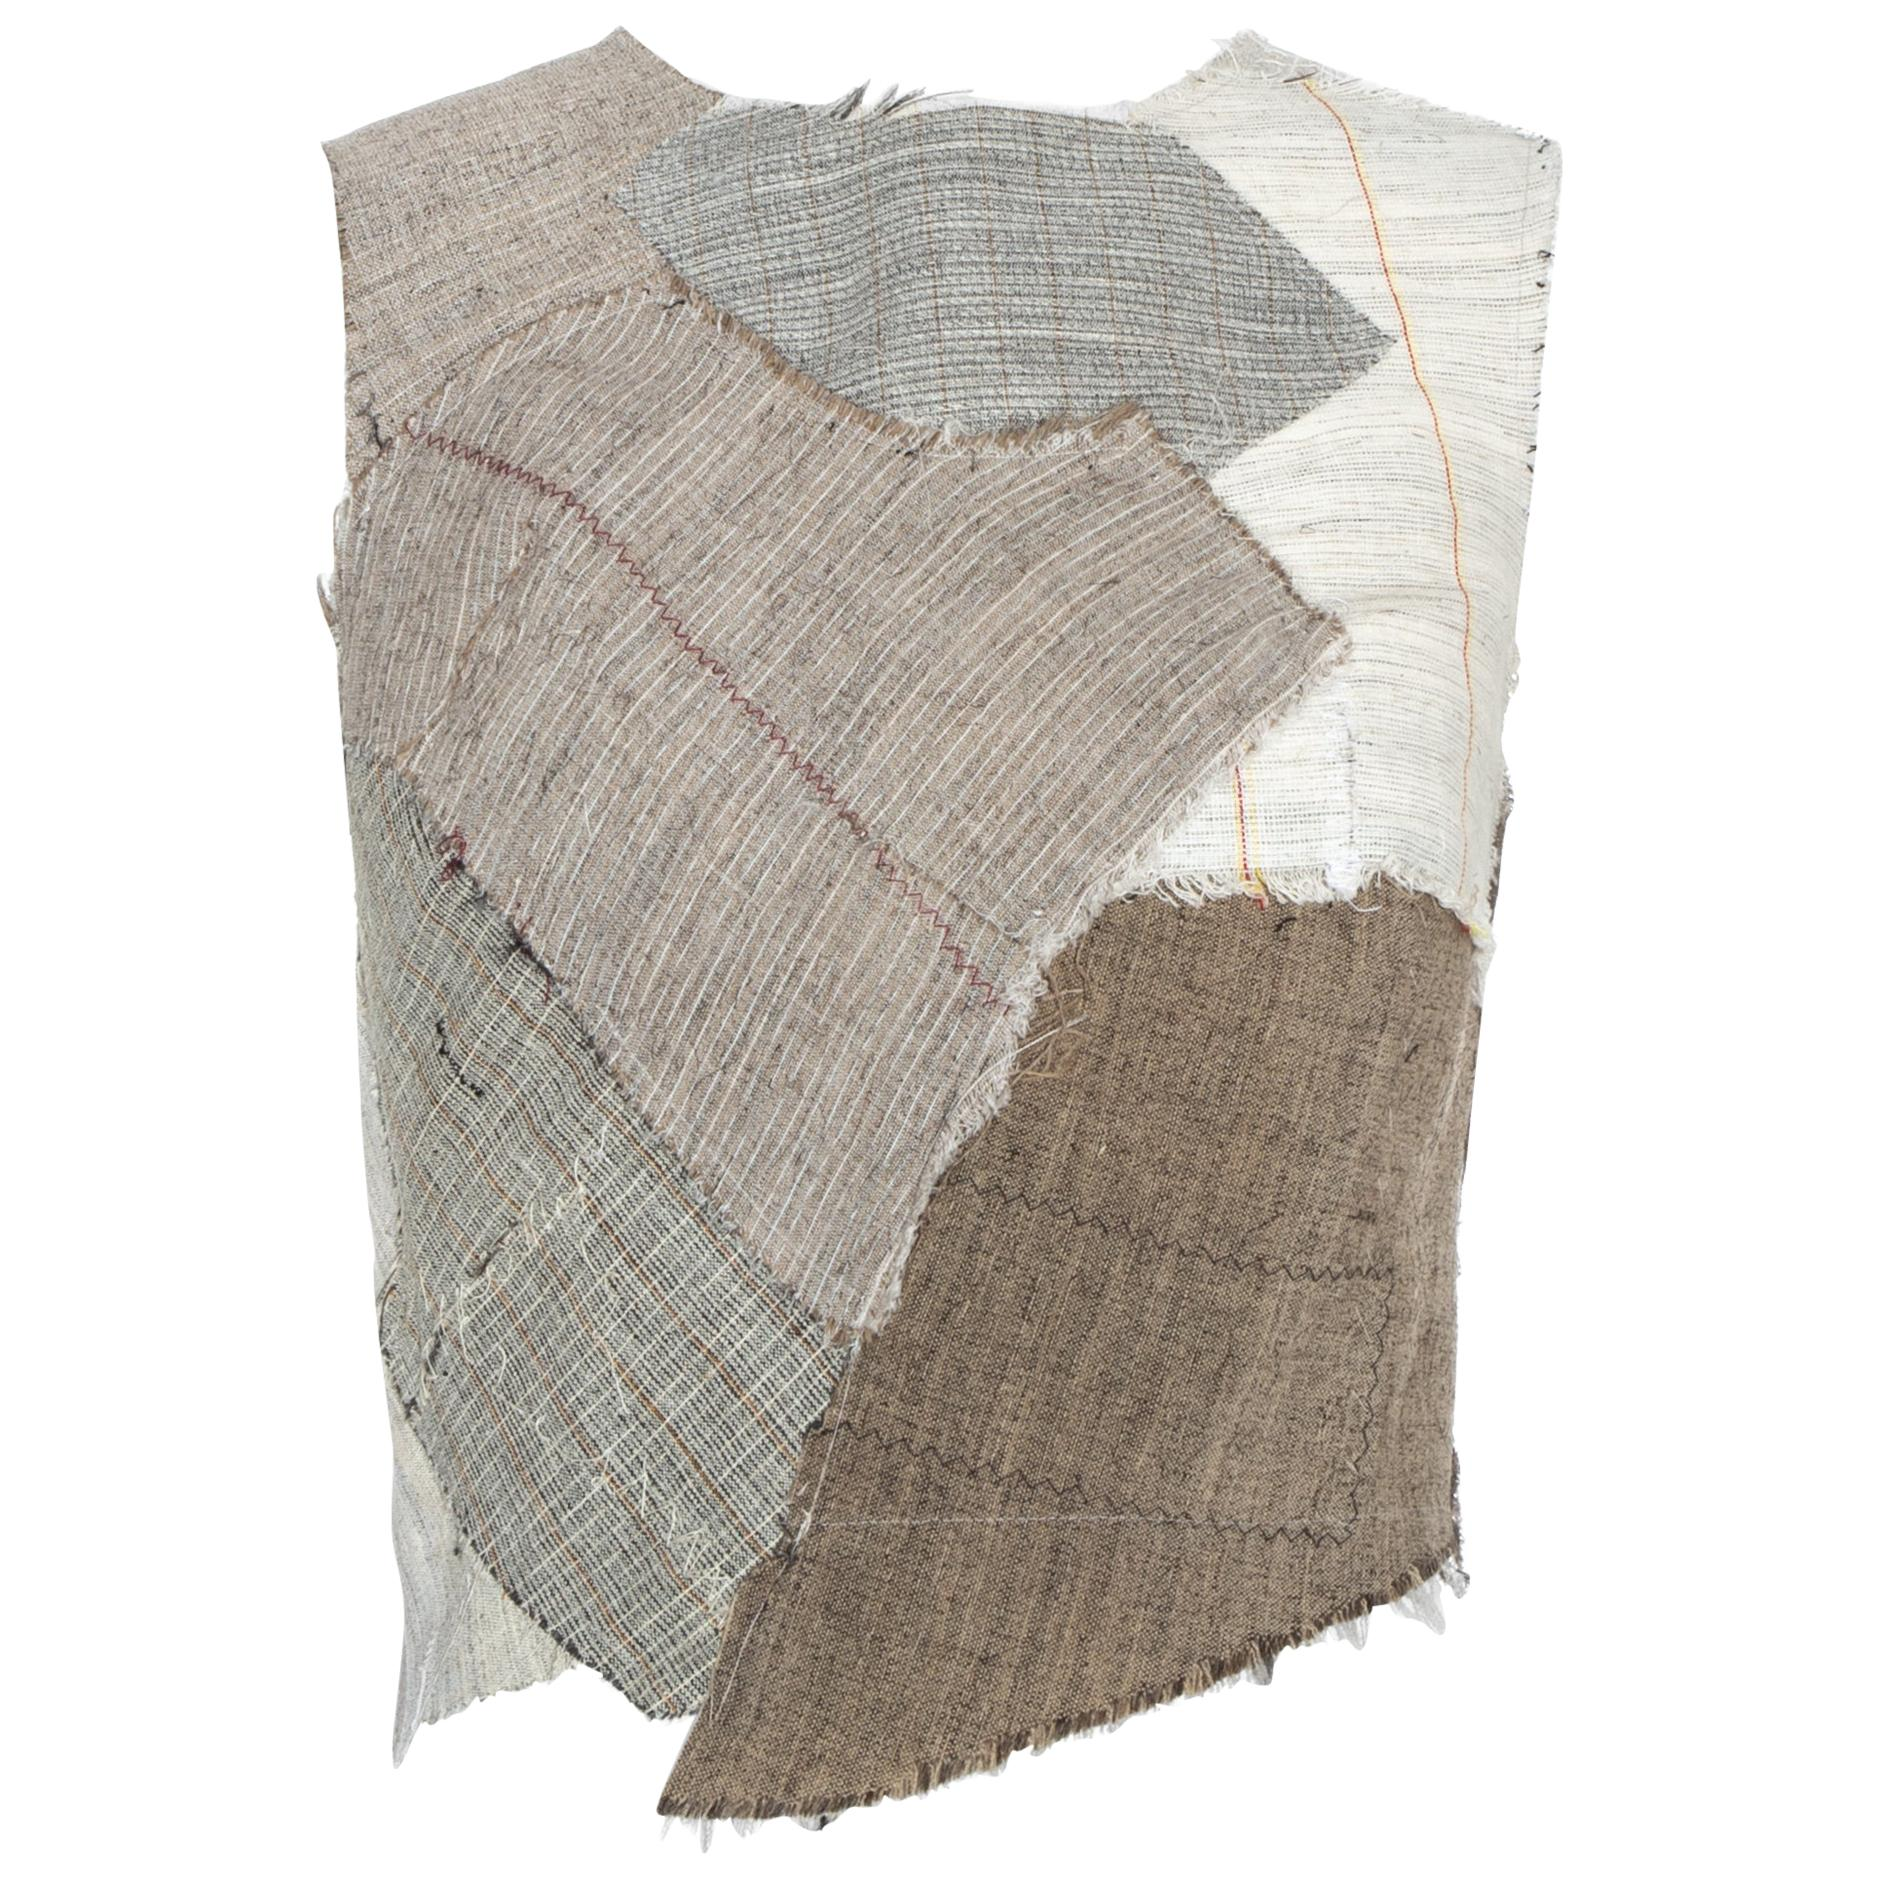 Martin Margiela artisanal corset top made with tailoring canvases, fw 2003